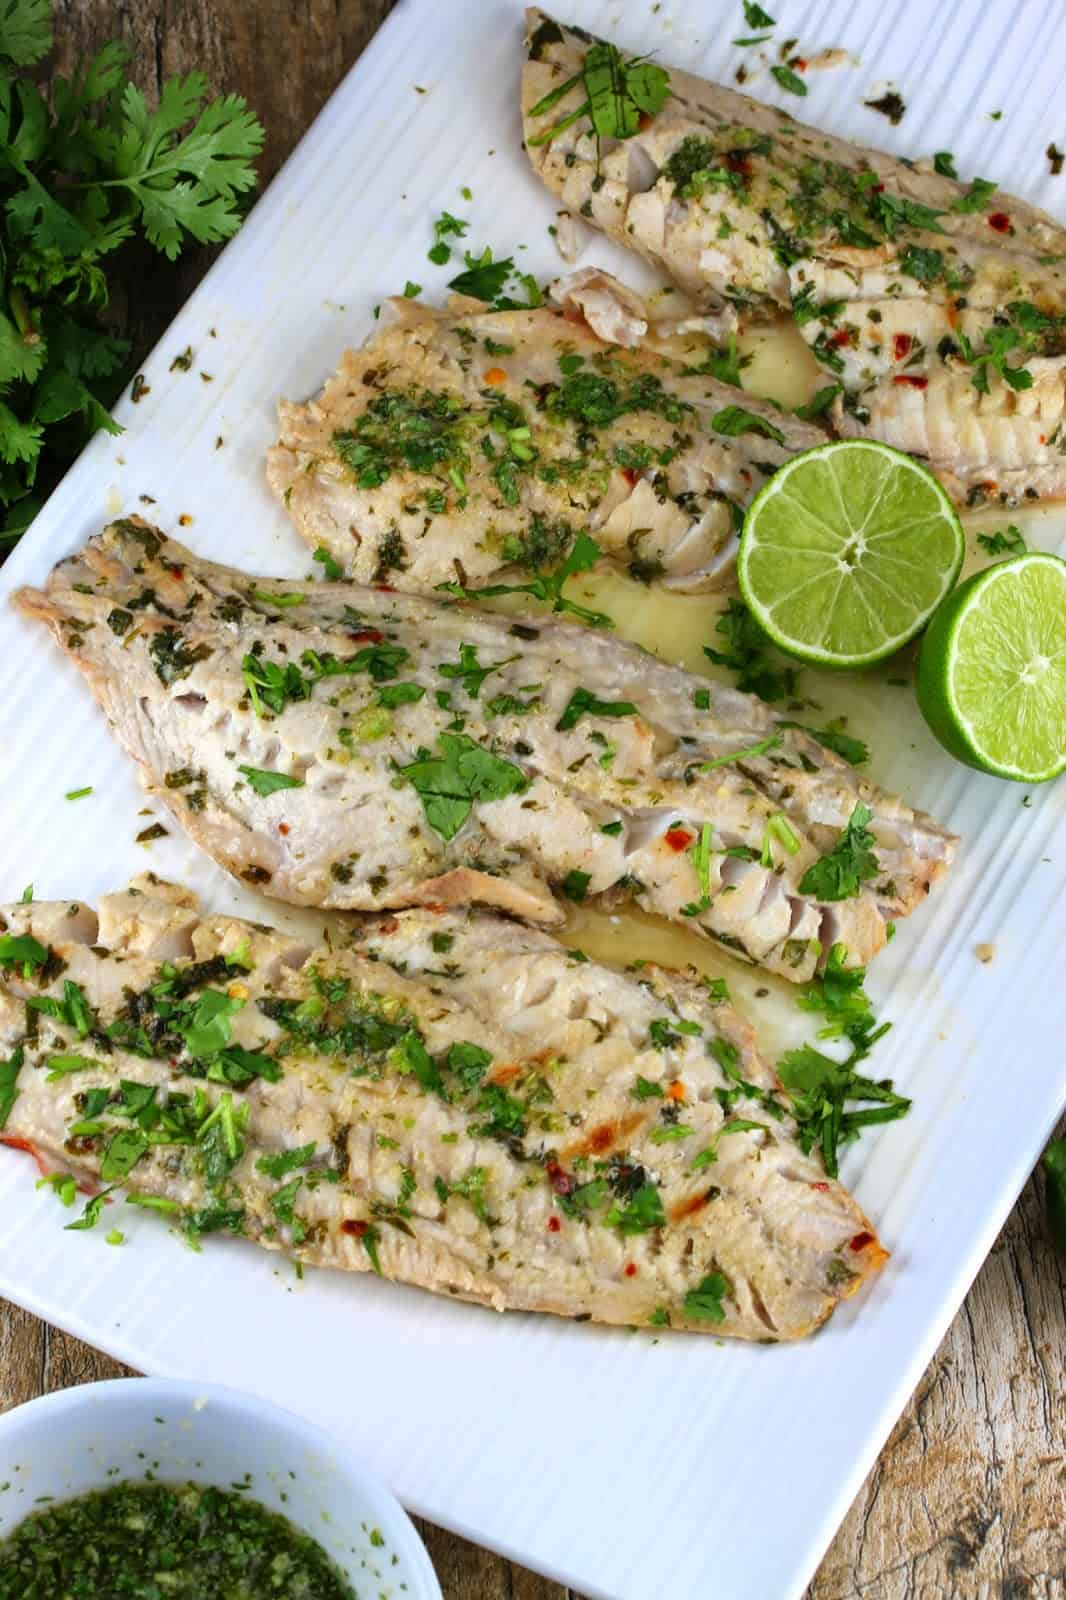 Thai grilled fish with lime wedges on a white serving platter